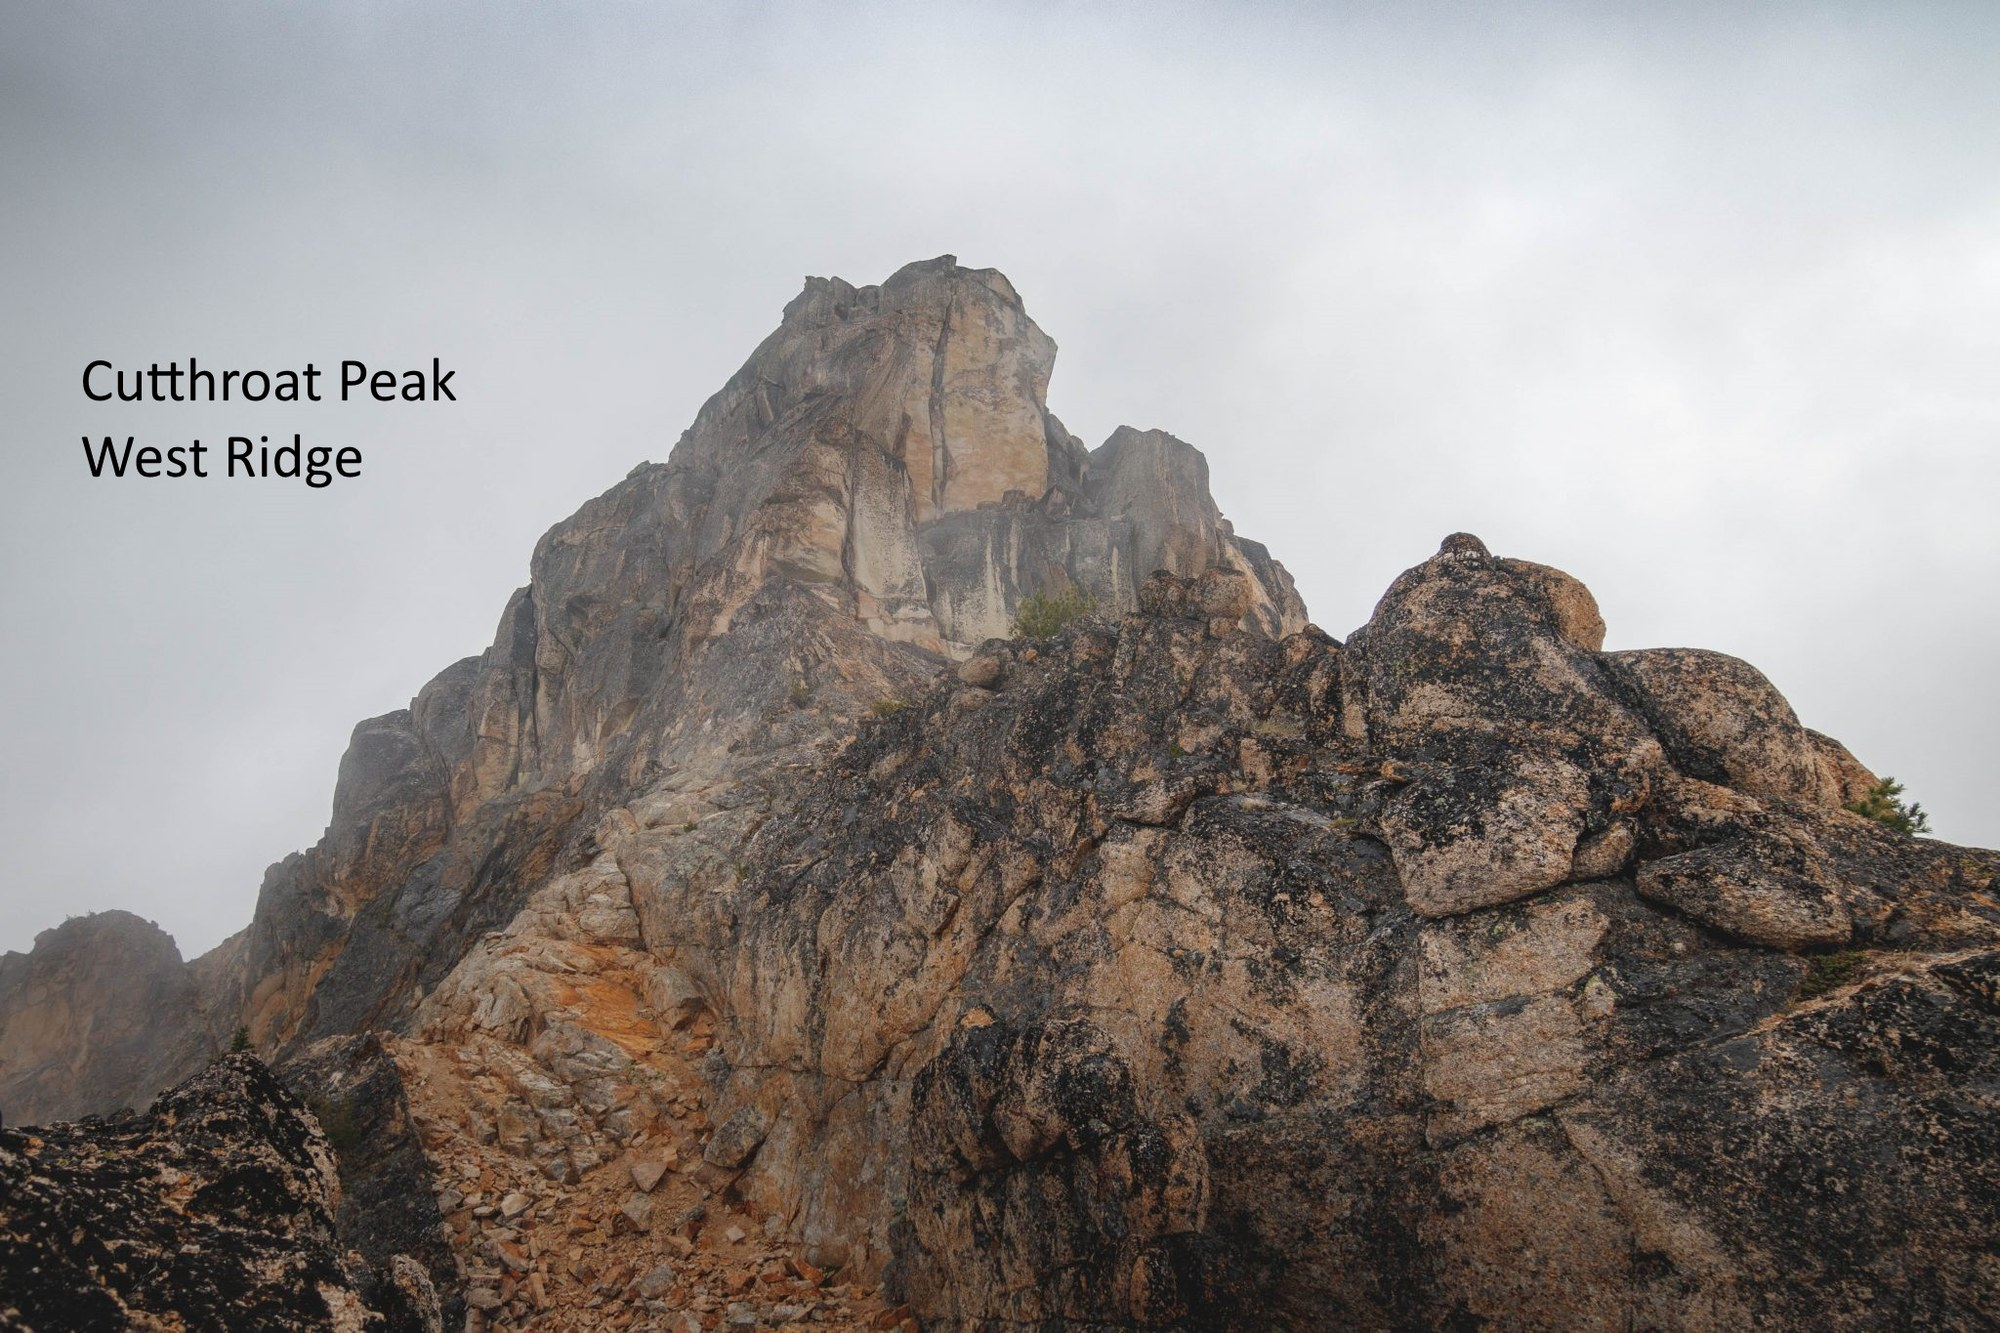 Cutthroat Peak: Hit By A Large Rock At High Velocity